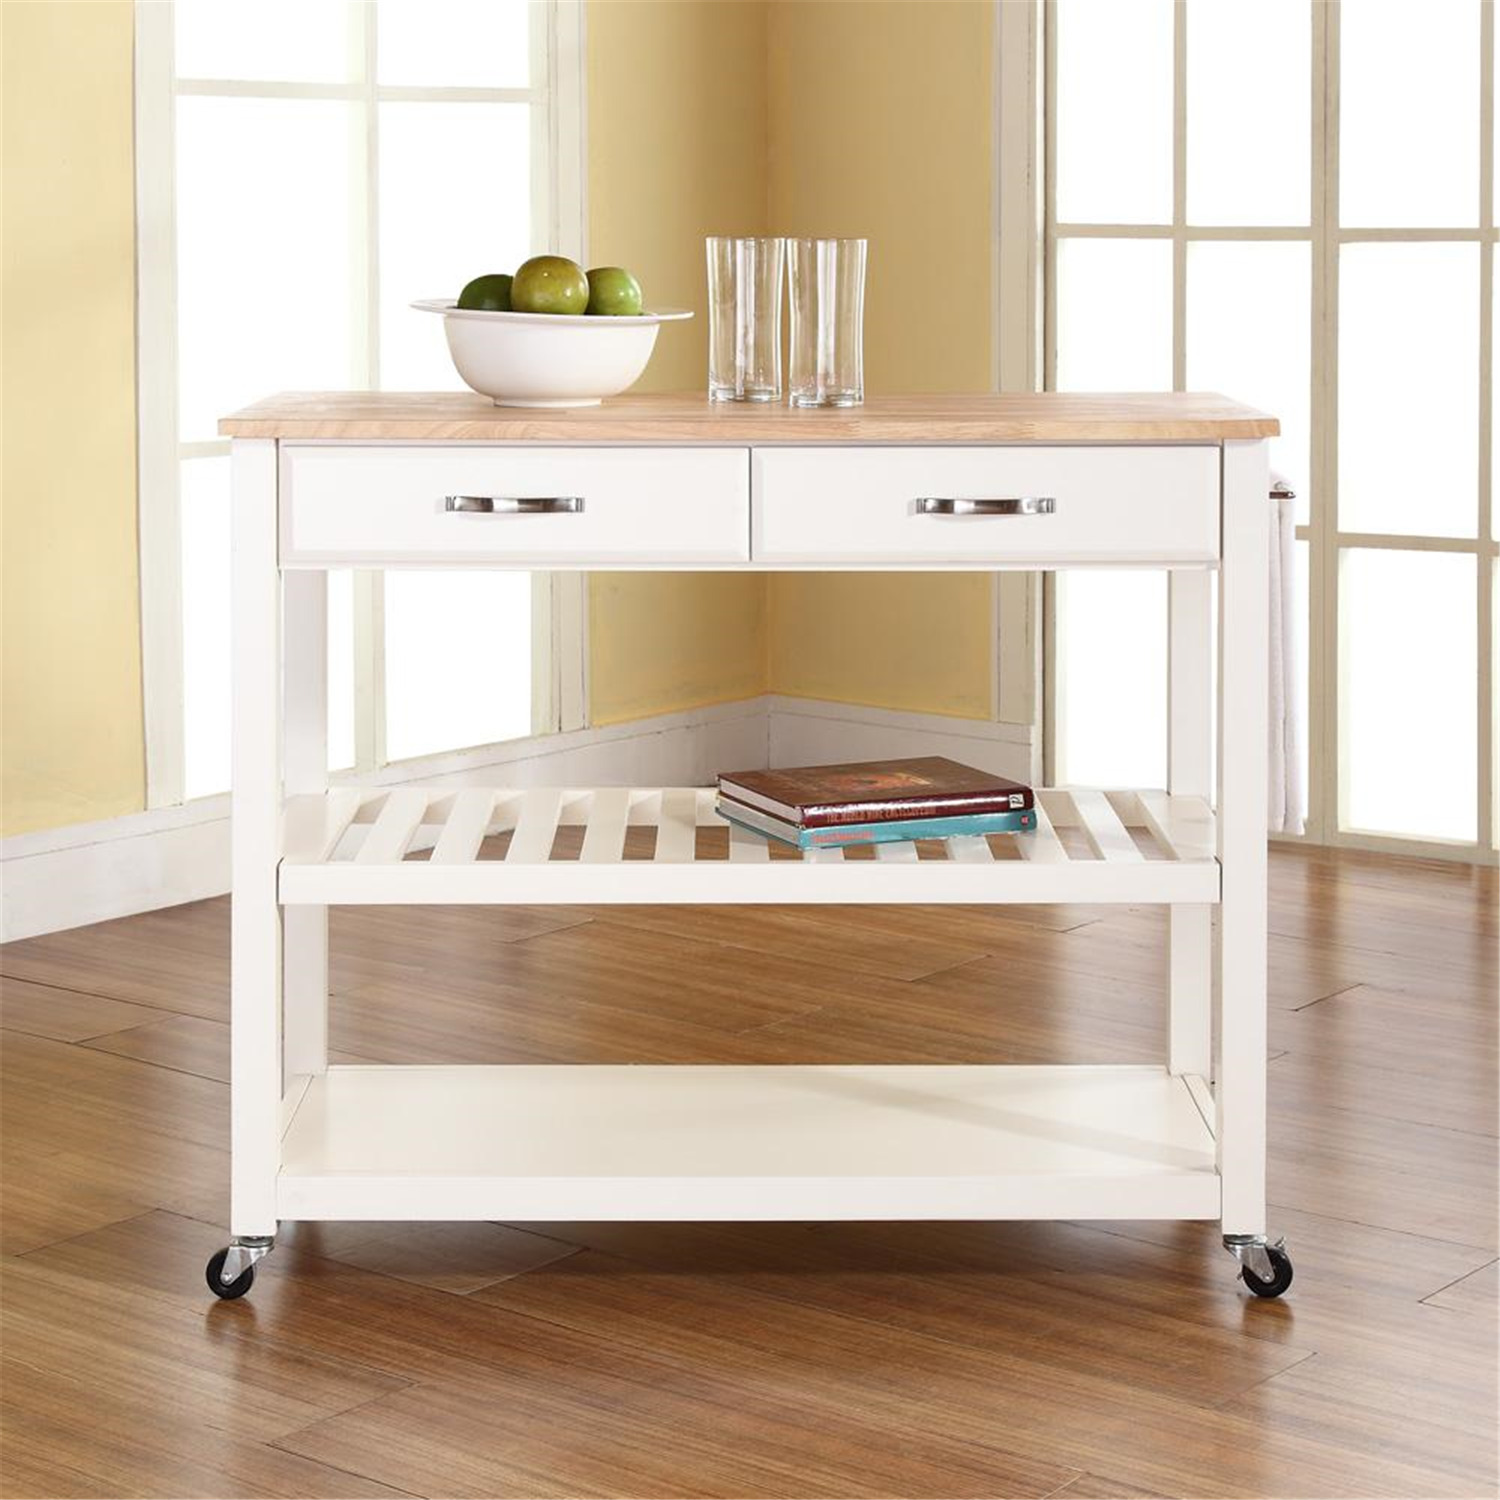 crosley kitchen cart island with optional stool storage by oj commerce